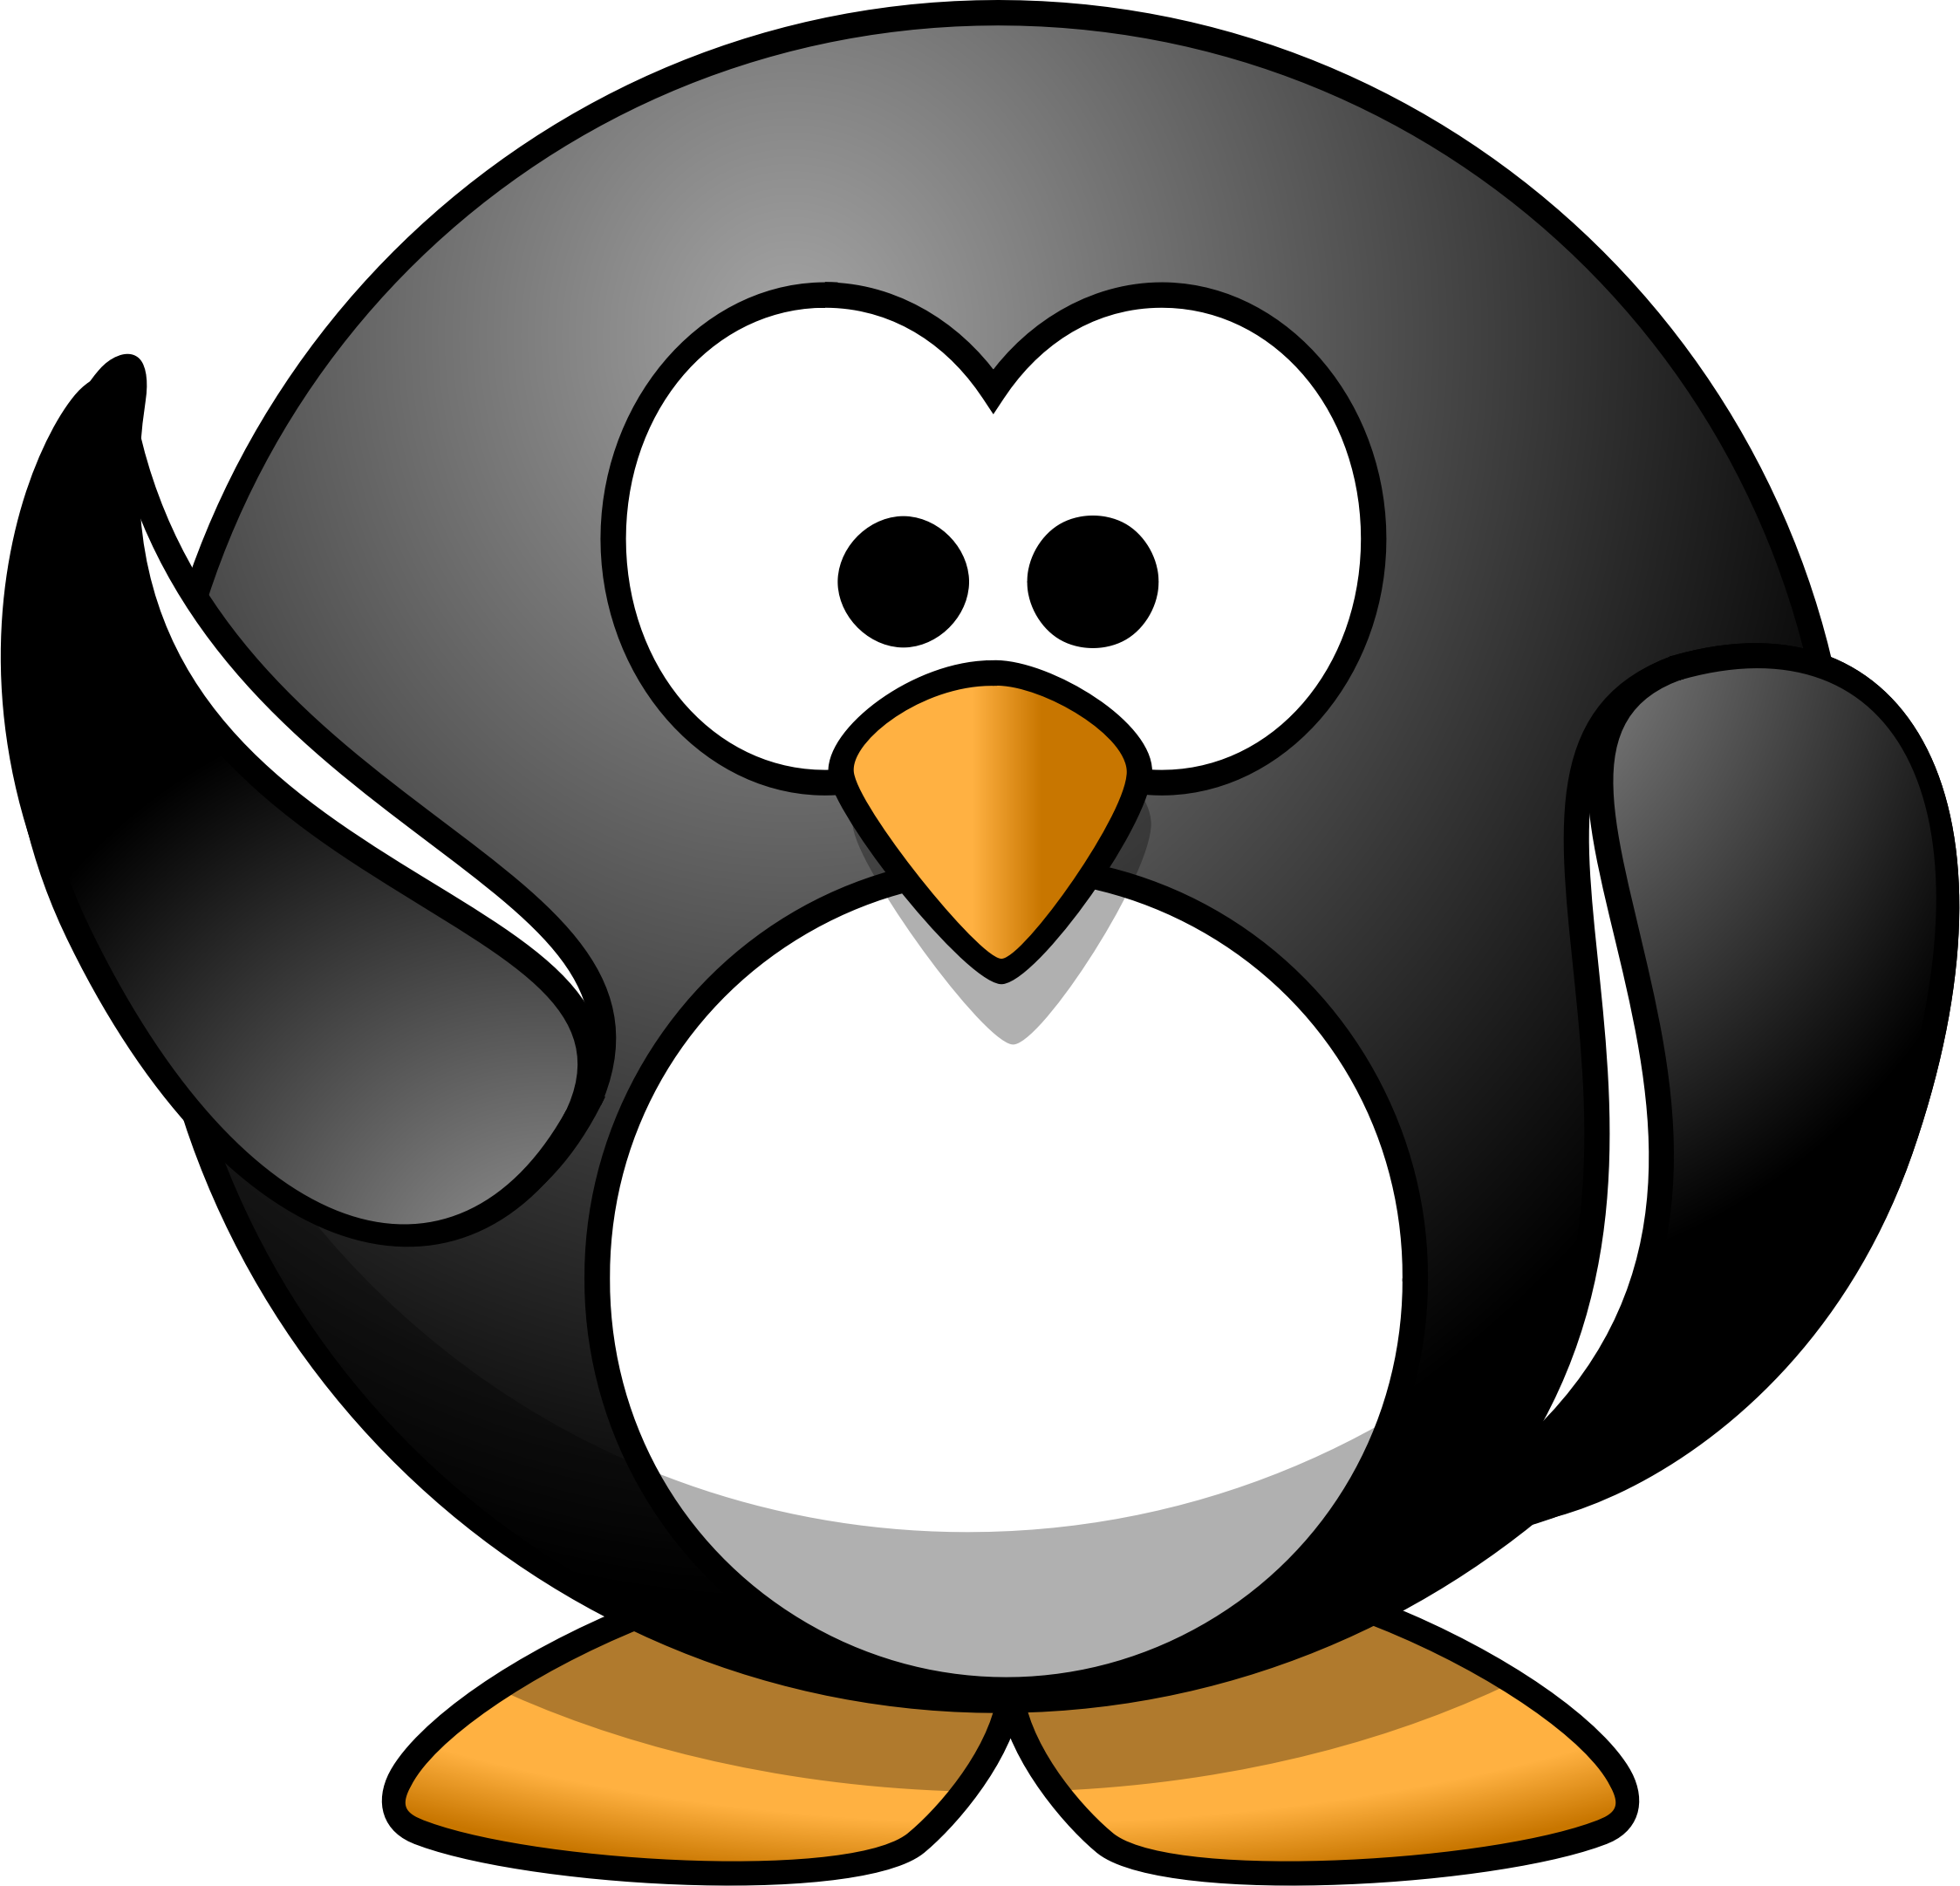 Drunk penguin clipart graphic library Cool Penguin Clipart - Free Clipart graphic library